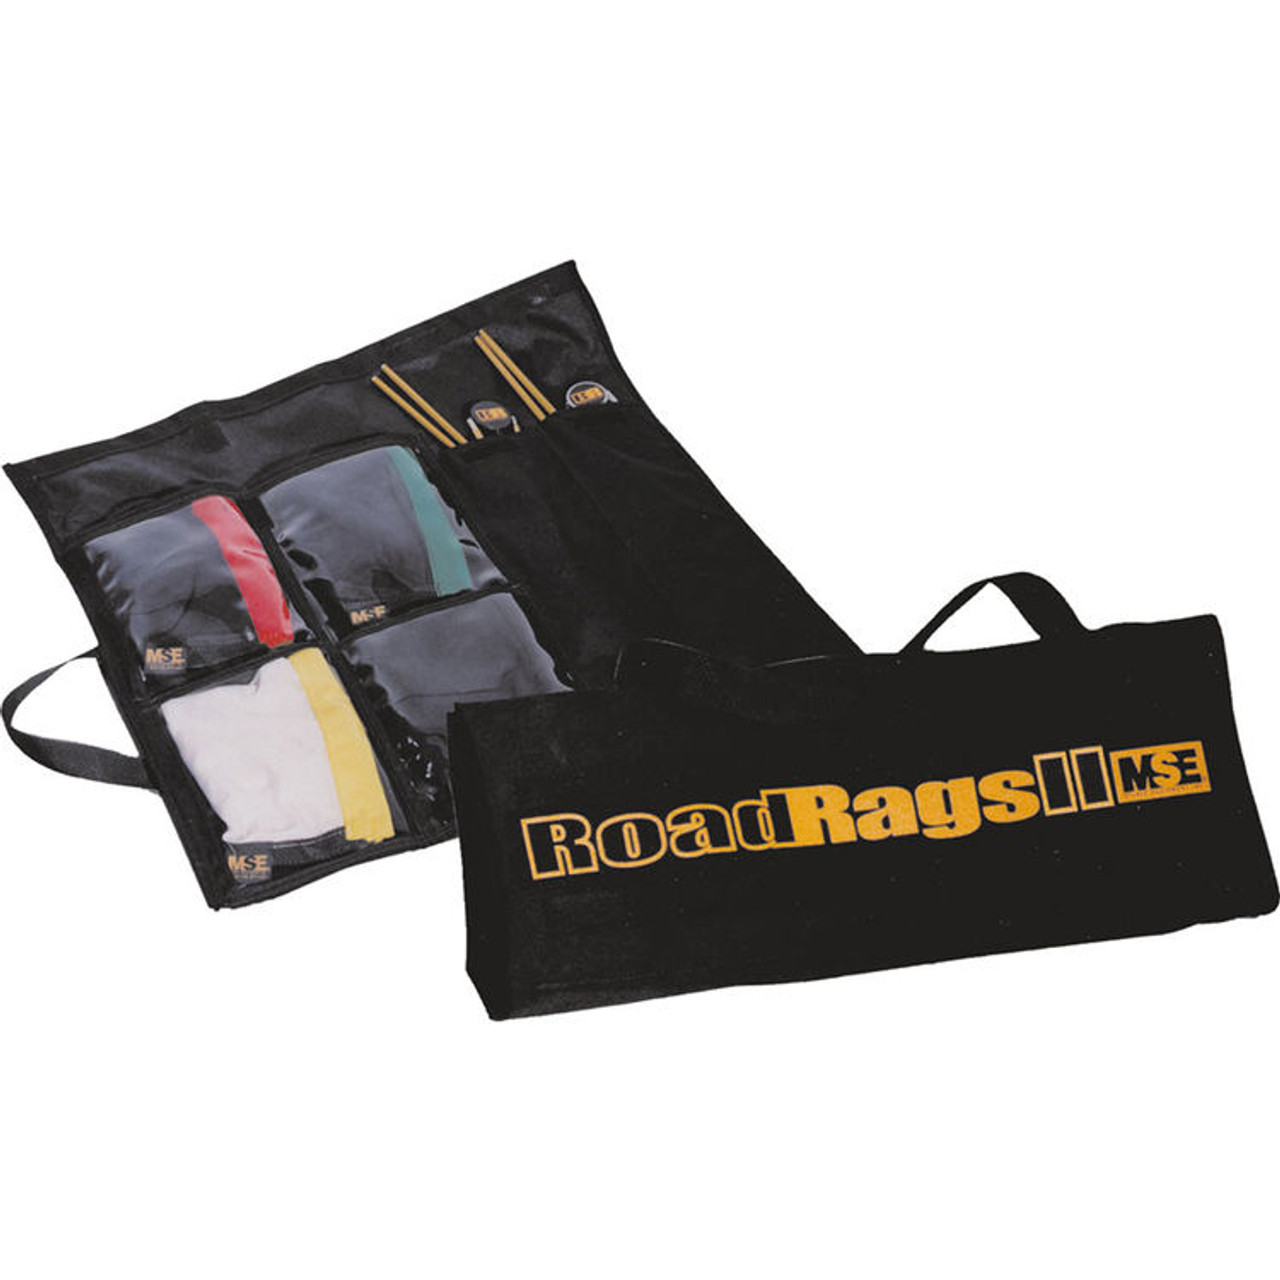 Matthews Roadrags Flag Kit (2 Holders 4 Fabrics)